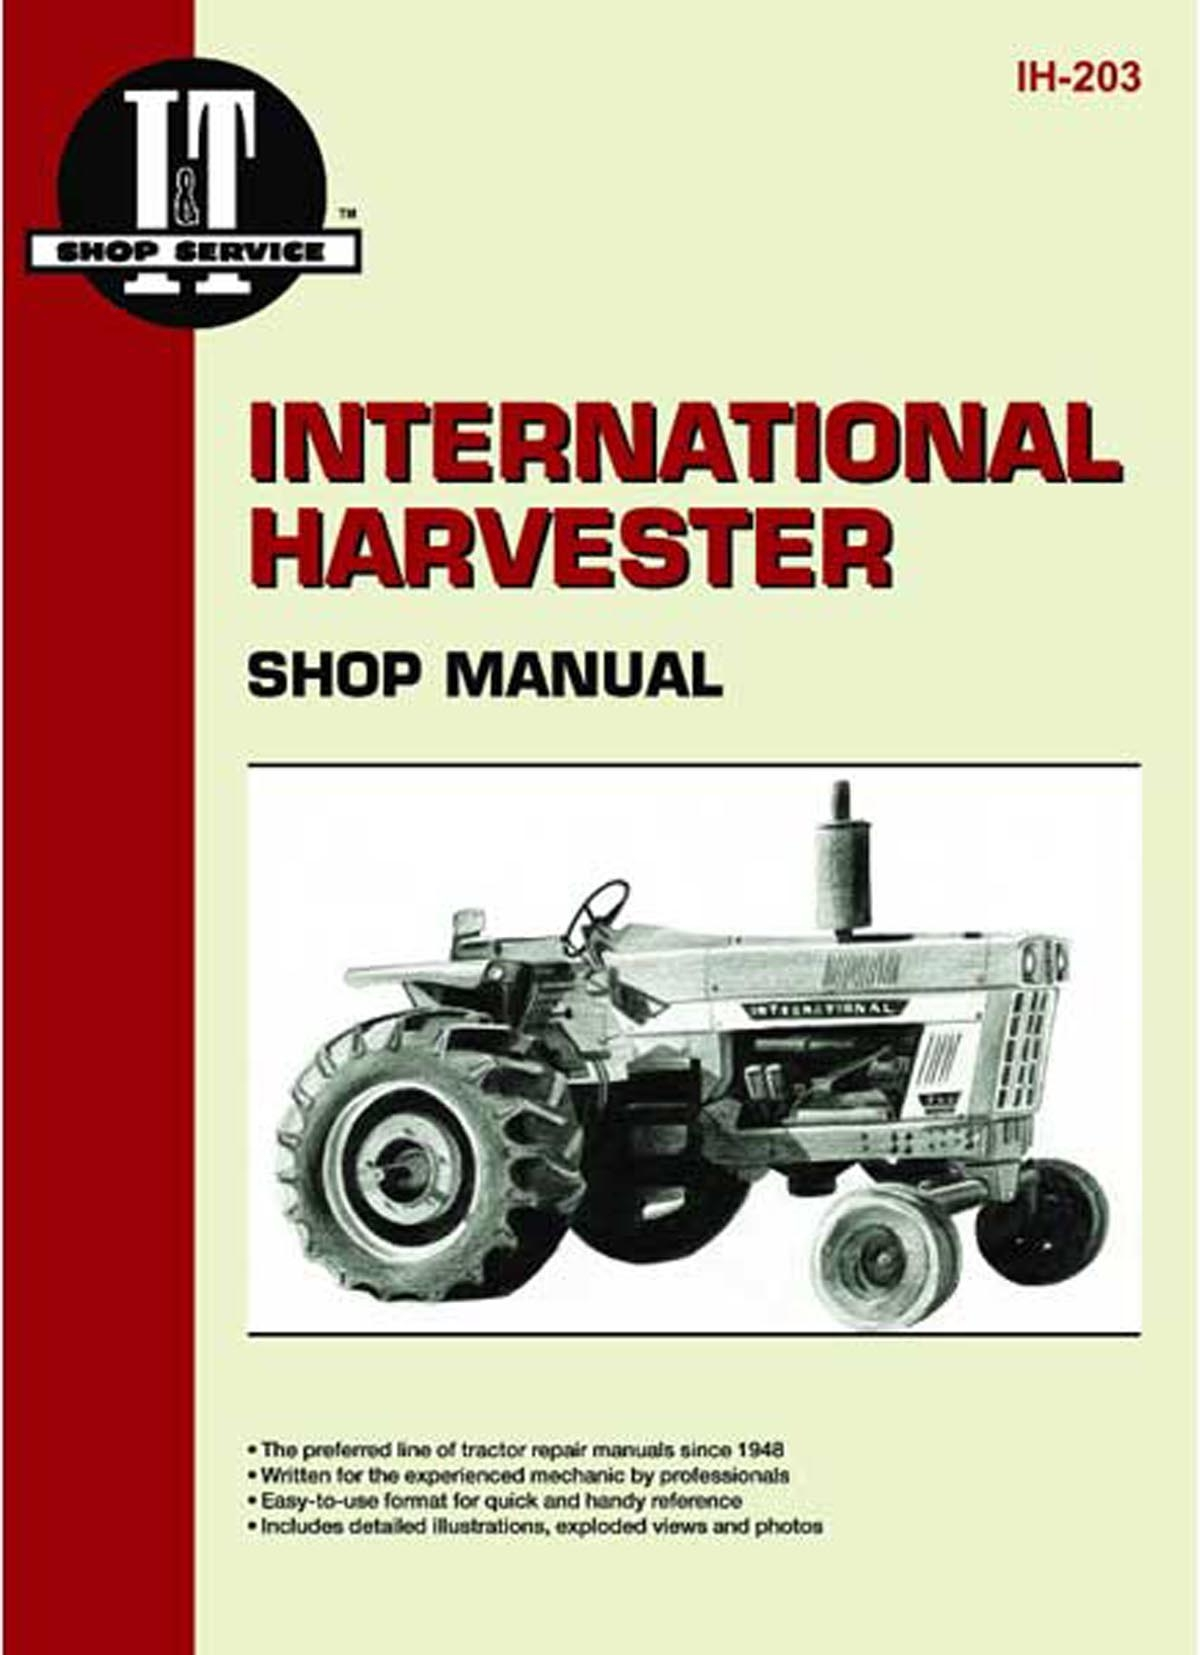 1086 International Harvester Wiring Diagram Shop Service Manual For The Case Ih 1026 1066 1086 454